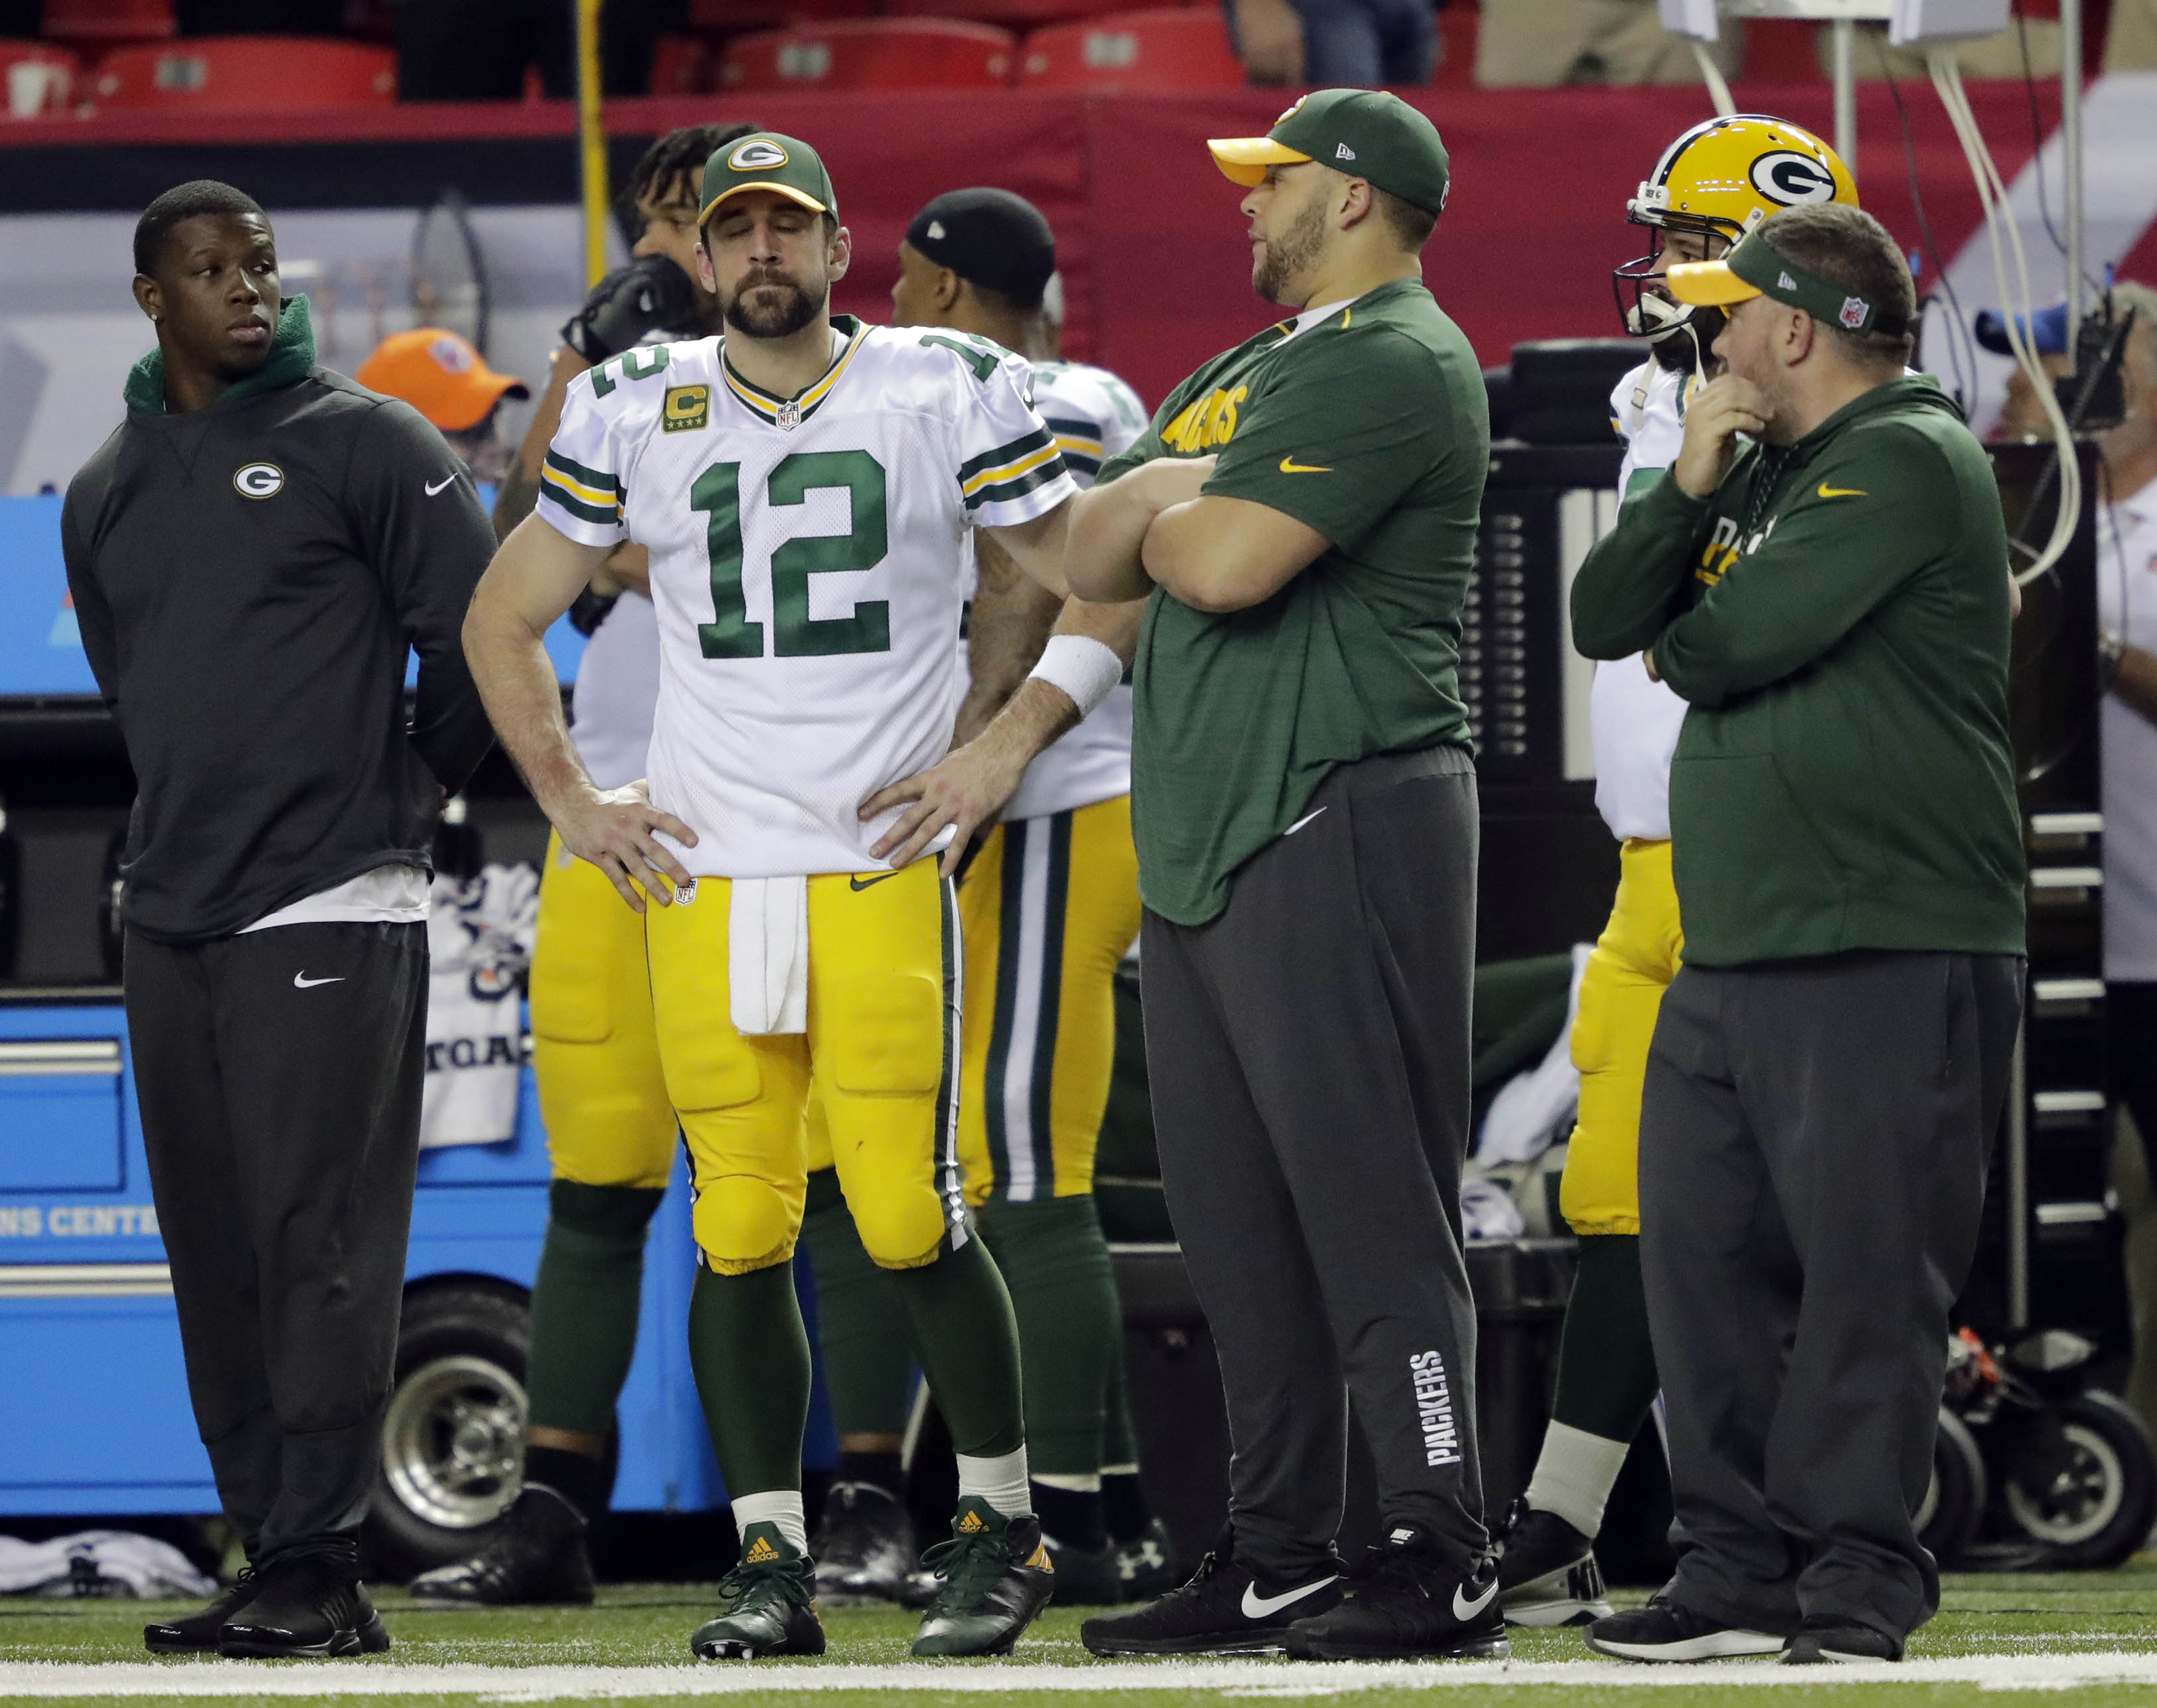 9832540-nfl-nfc-championship-green-bay-packers-at-atlanta-falcons